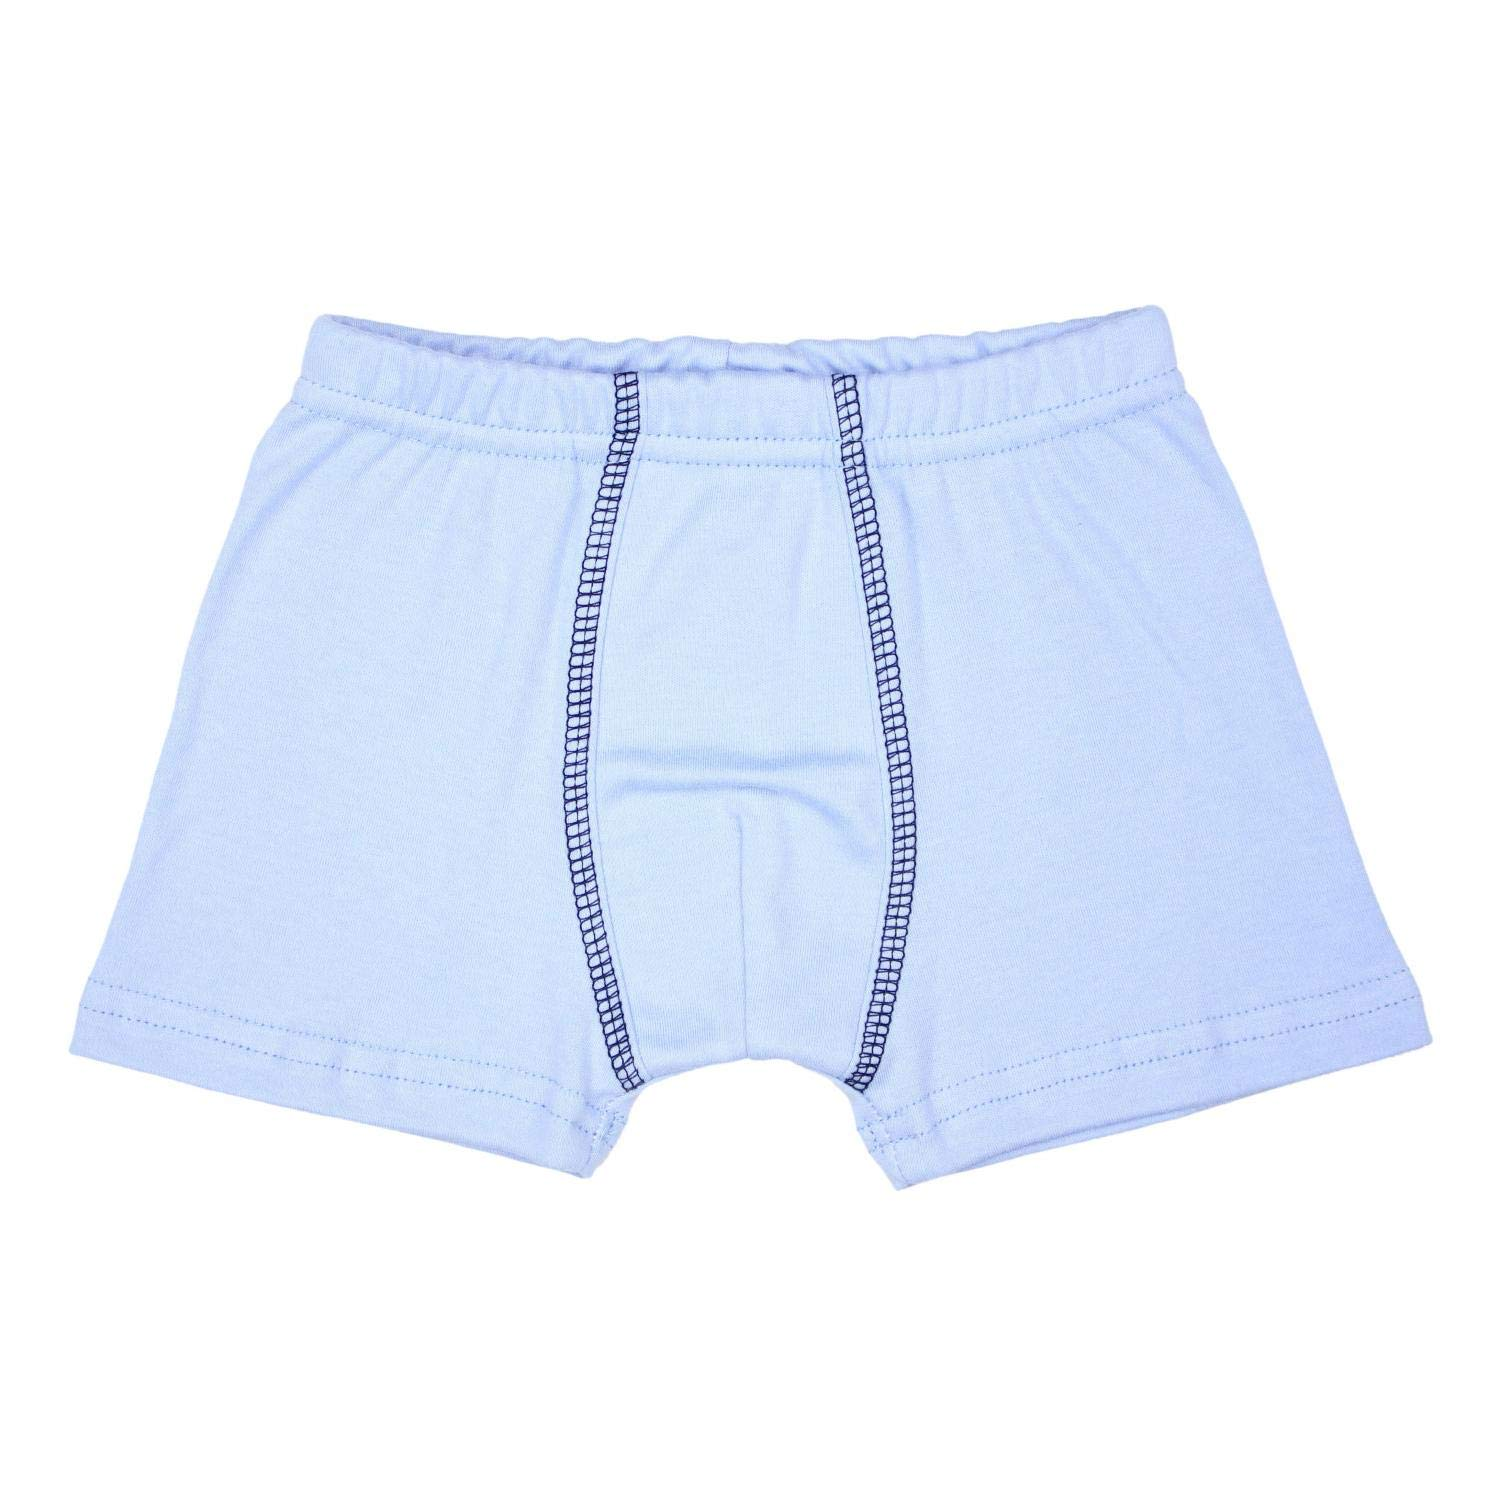 TupTam Boys Briefs or Boxers Plain Printed Pack of 6